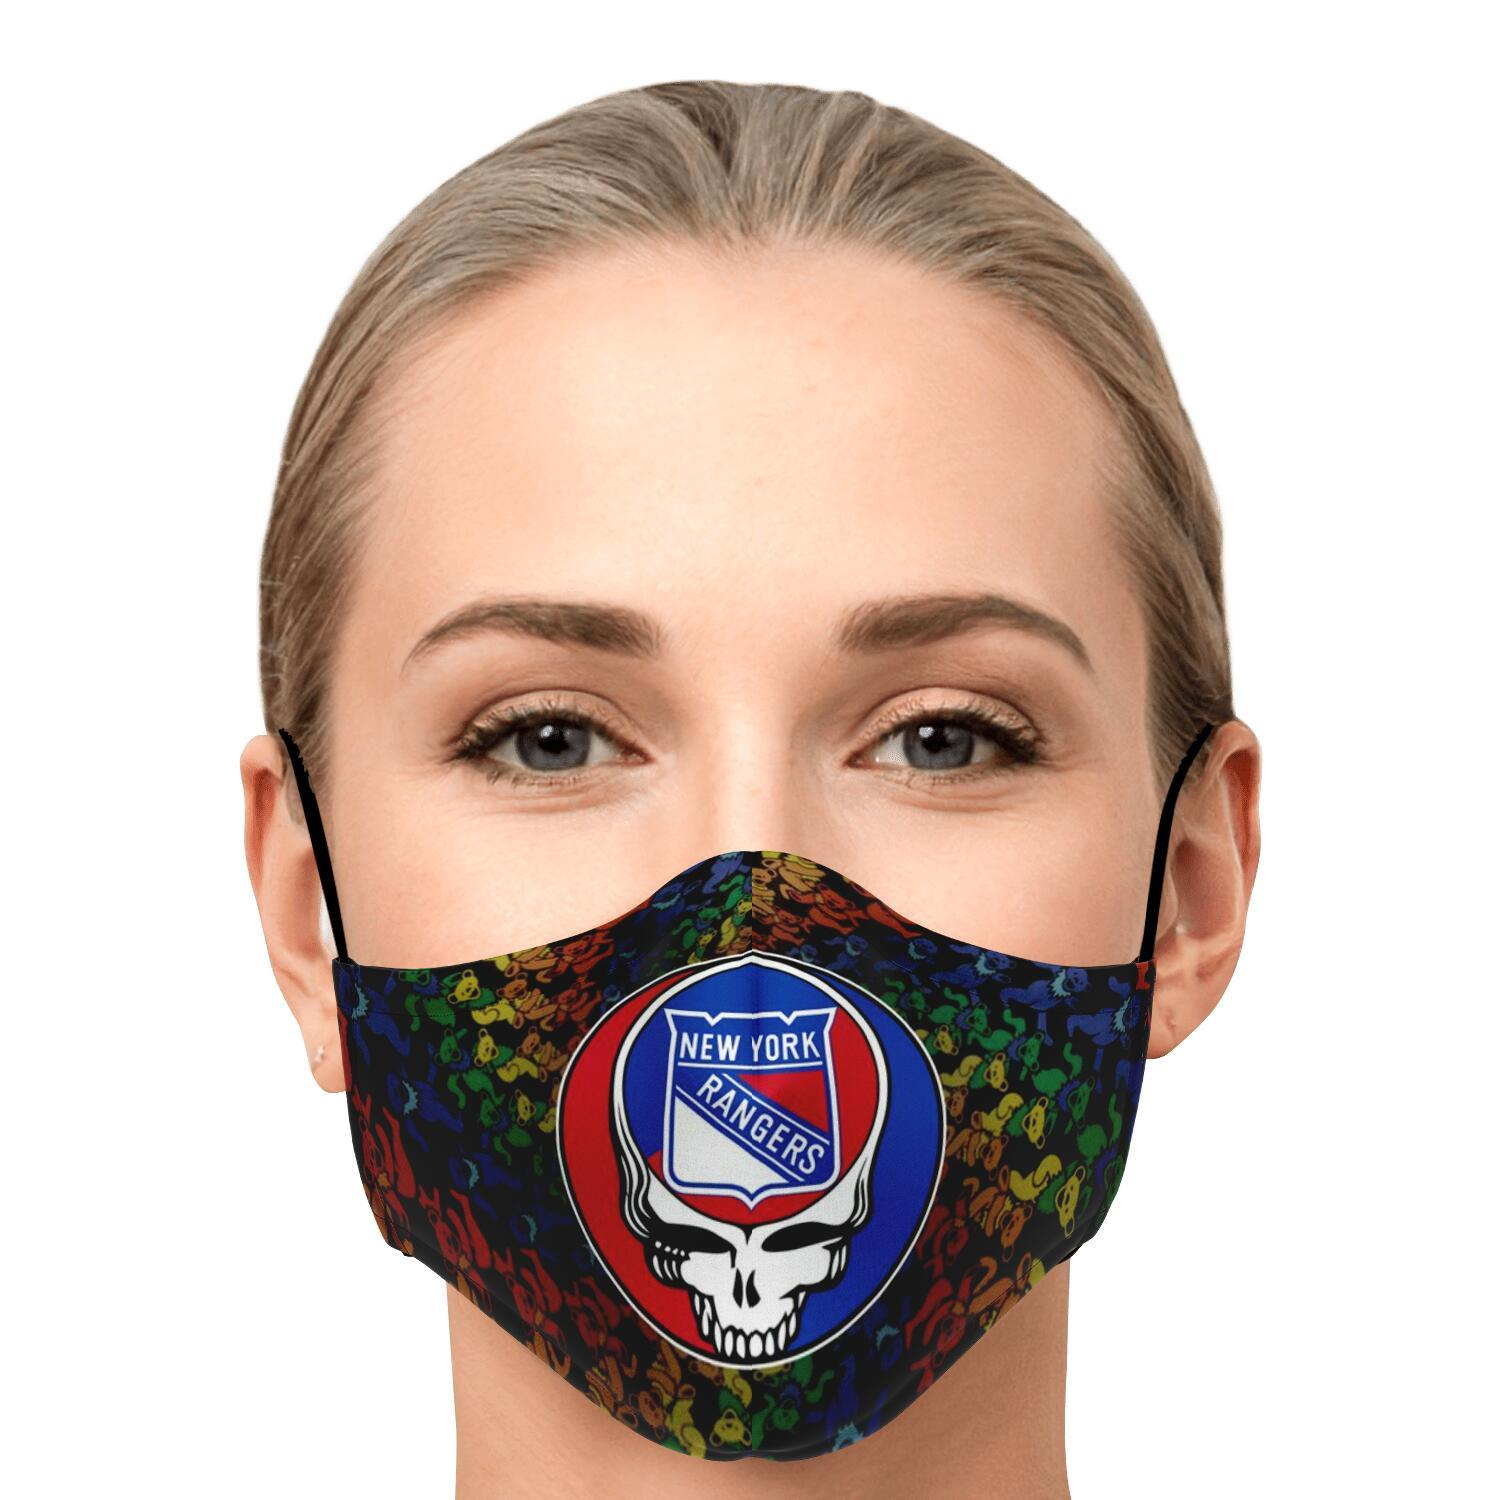 Steal Your Face Grateful Dead New York Rangers Face Mask 1